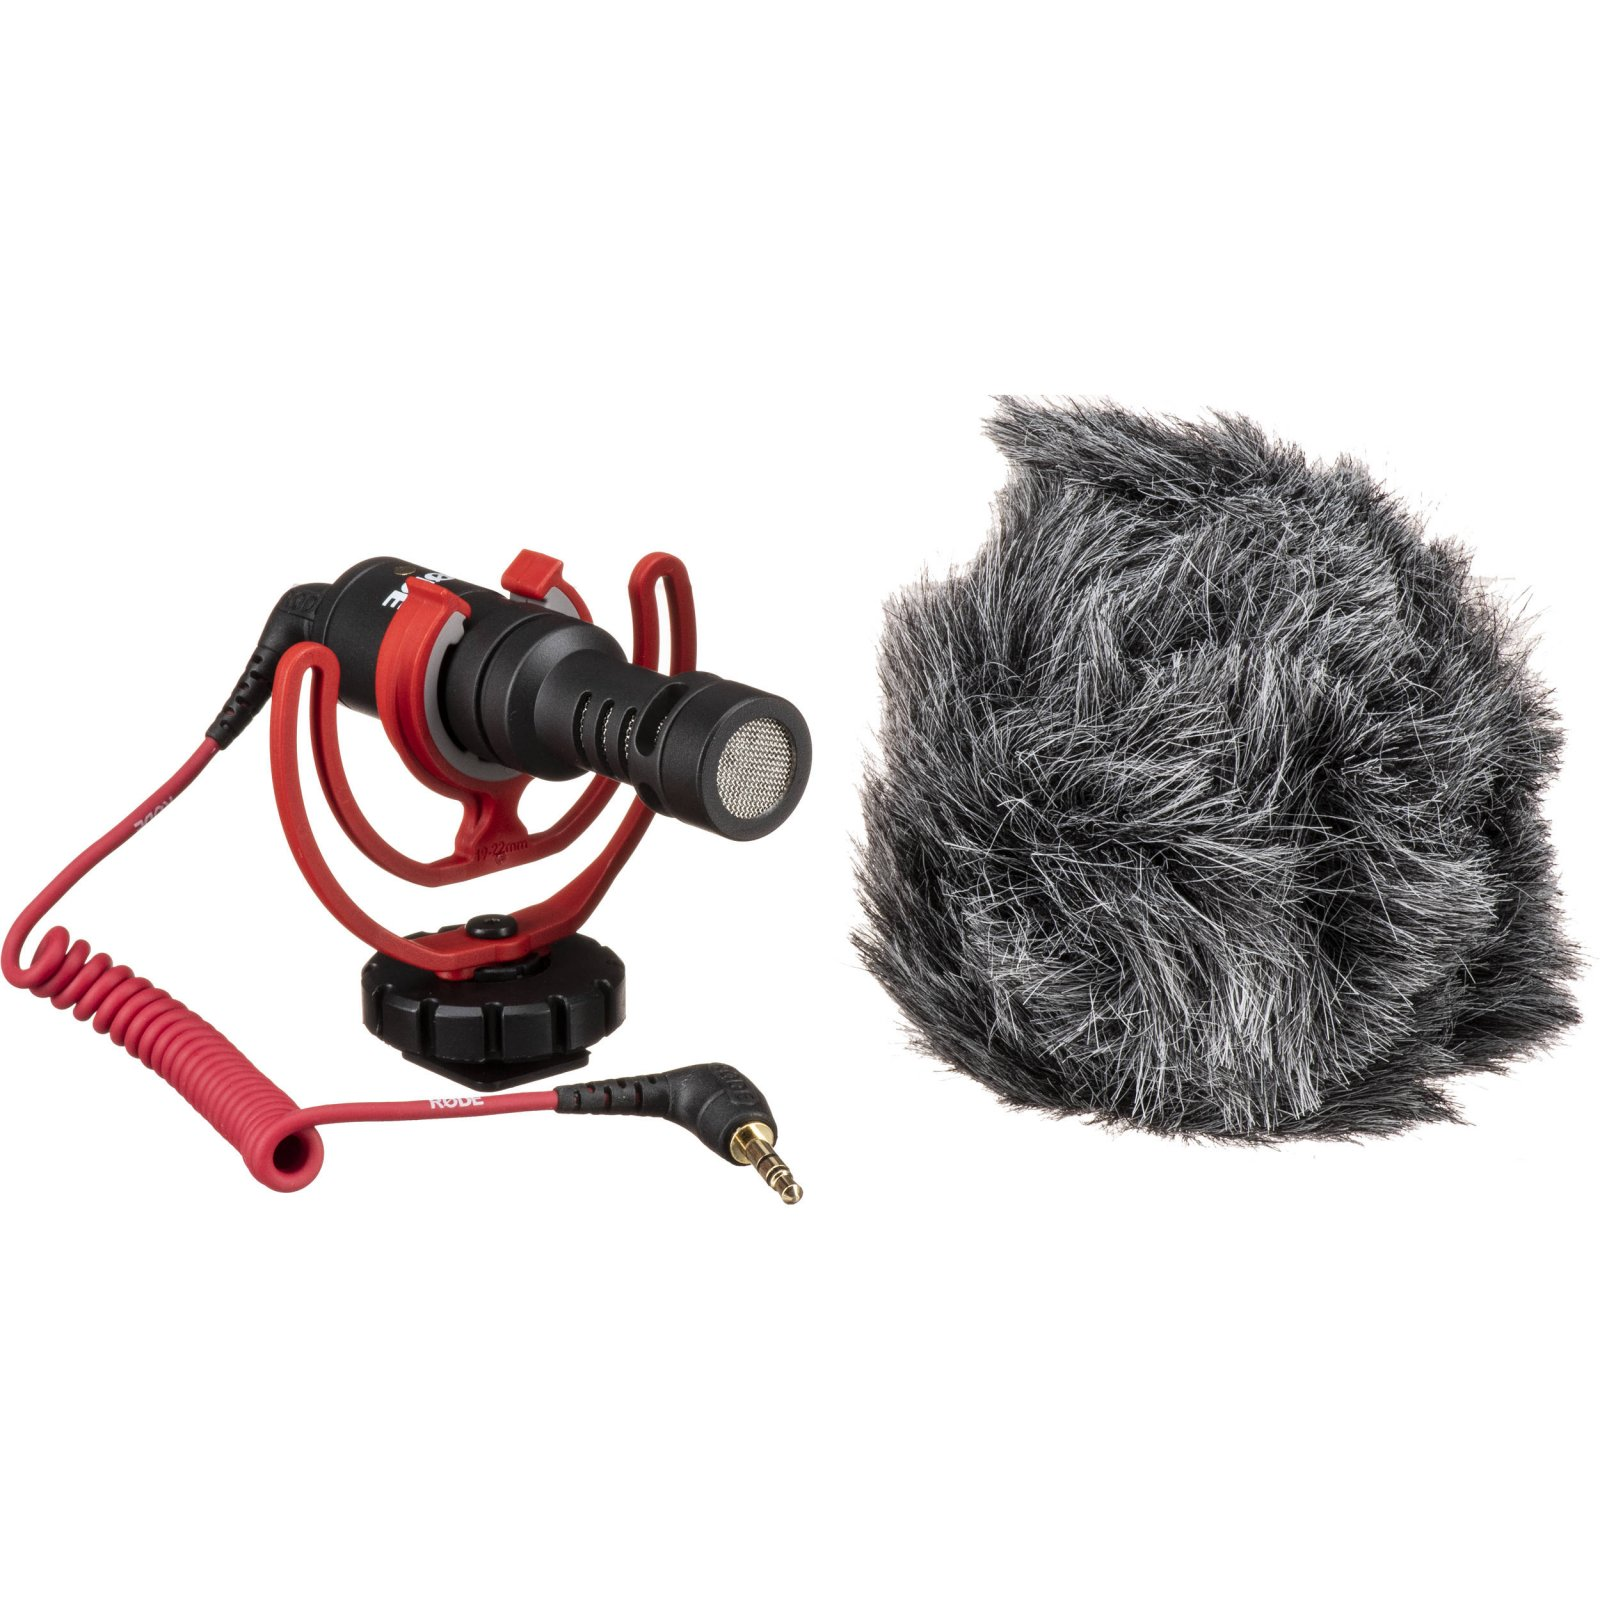 Rode VideoMicro Compact On-Camera DSLR Microphone